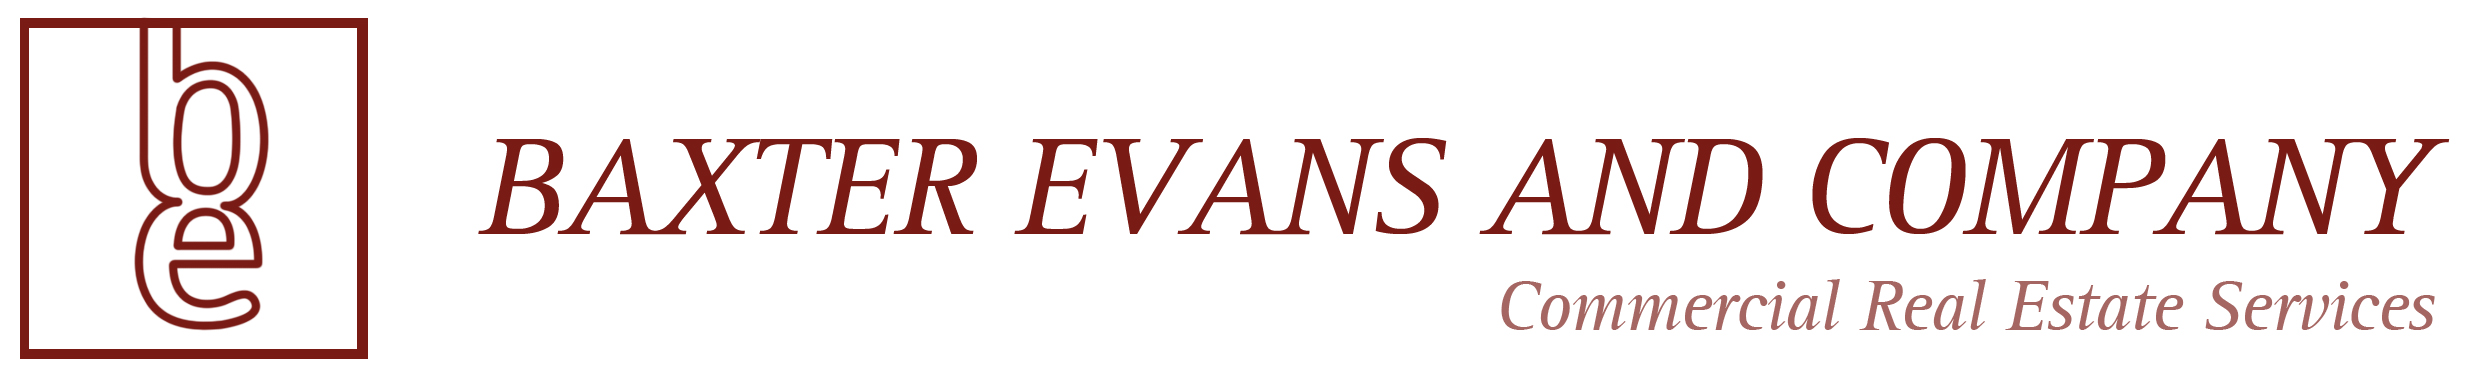 Baxter Evans & Company | bevans-slider-trusted-since-1967